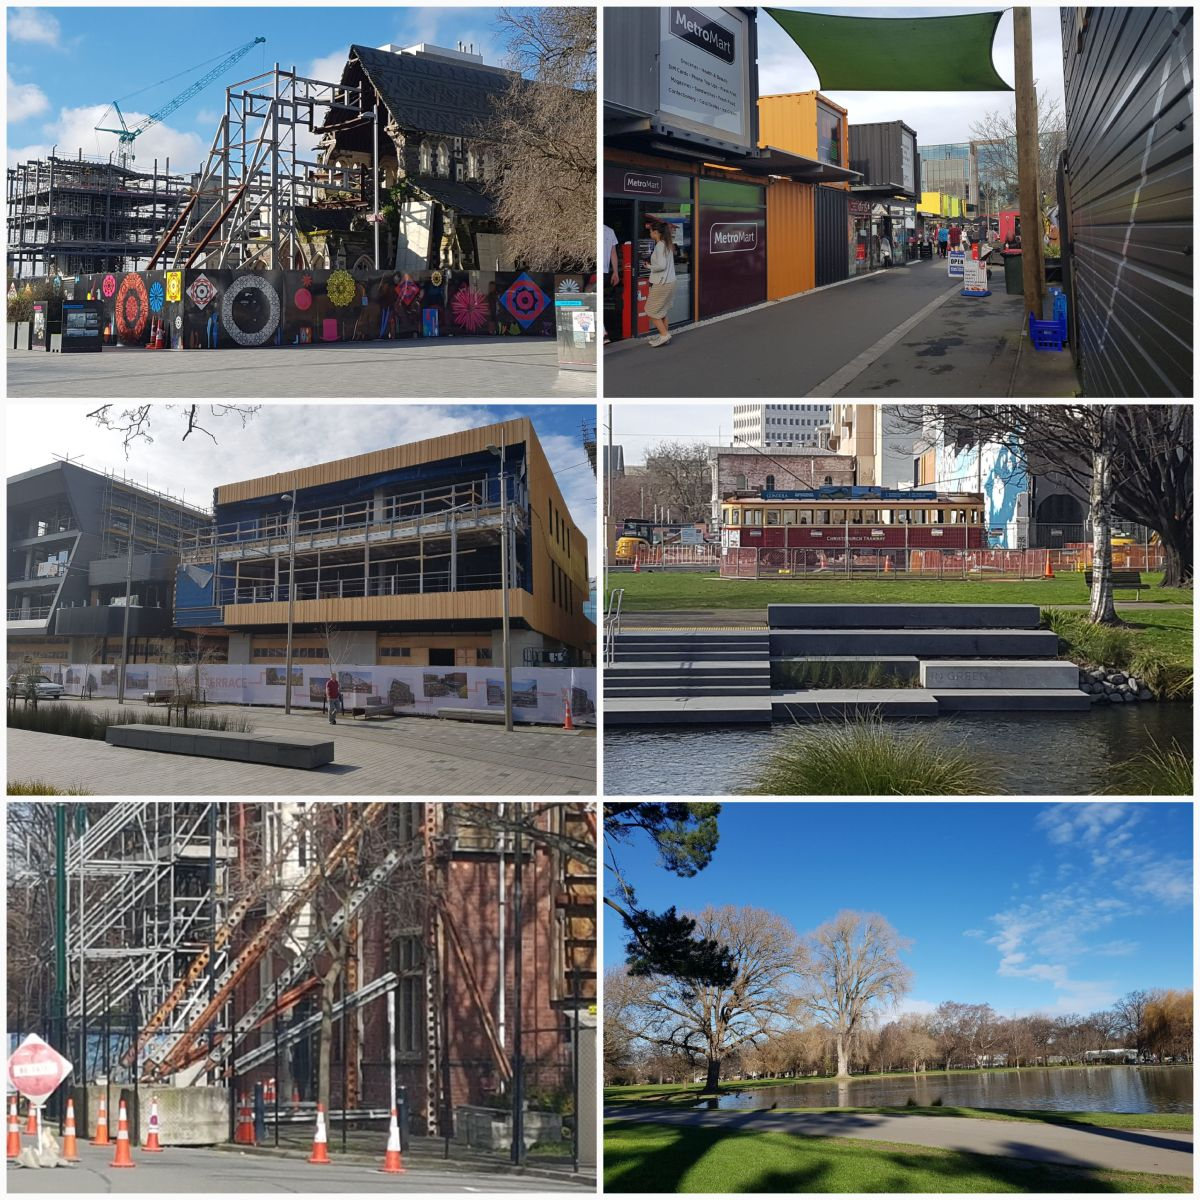 Christchurch: after the earthquake